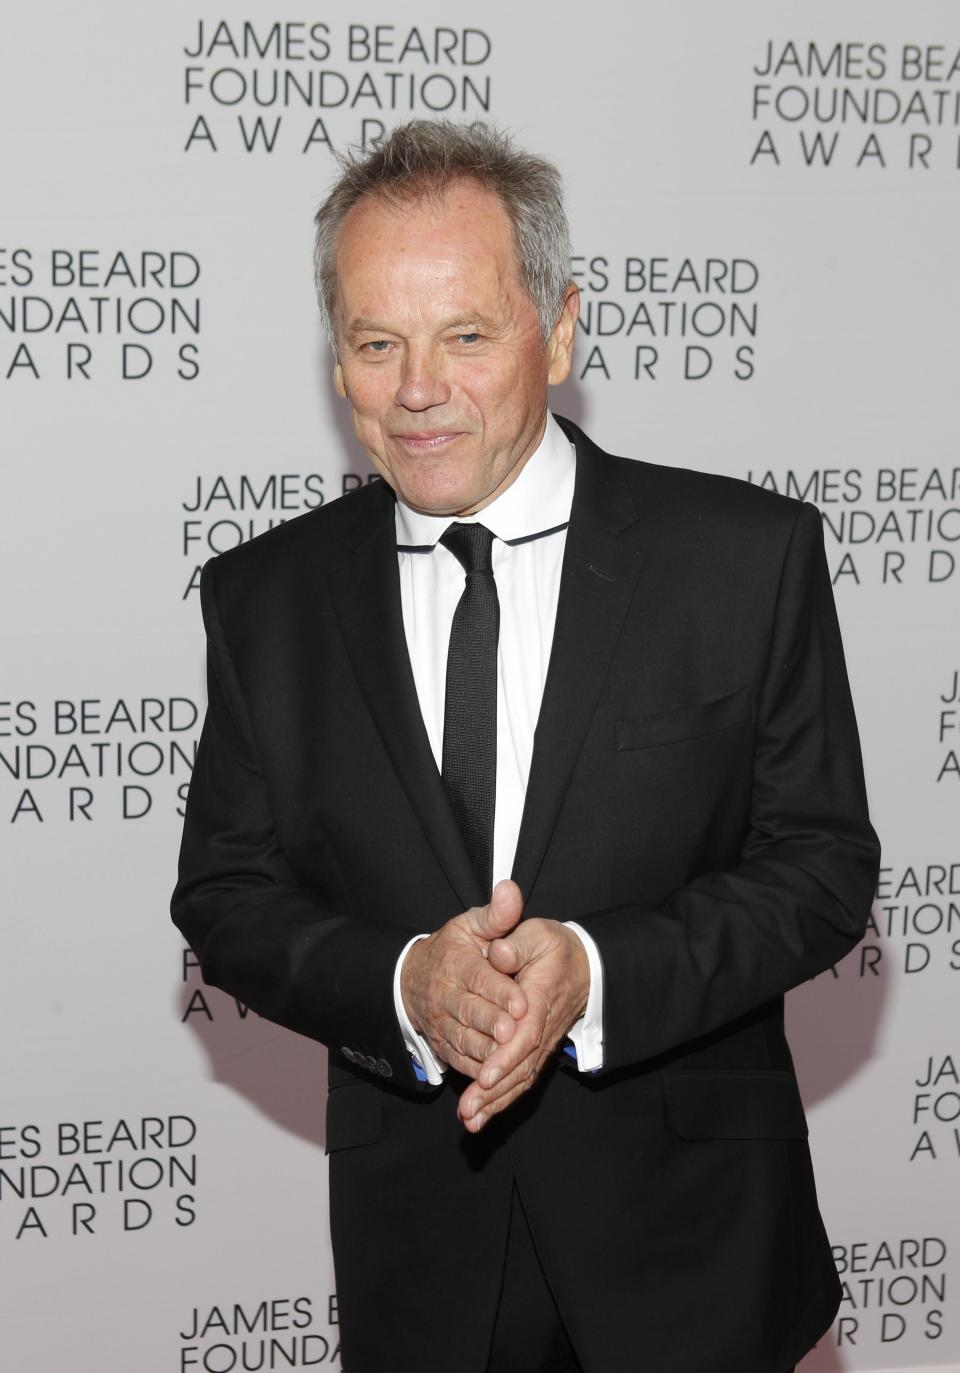 Chef Wolfgang Puck arrives for the James Beard Foundation Awards, Monday, May 7, 2012, in New York. (AP Photo/Jason DeCrow)